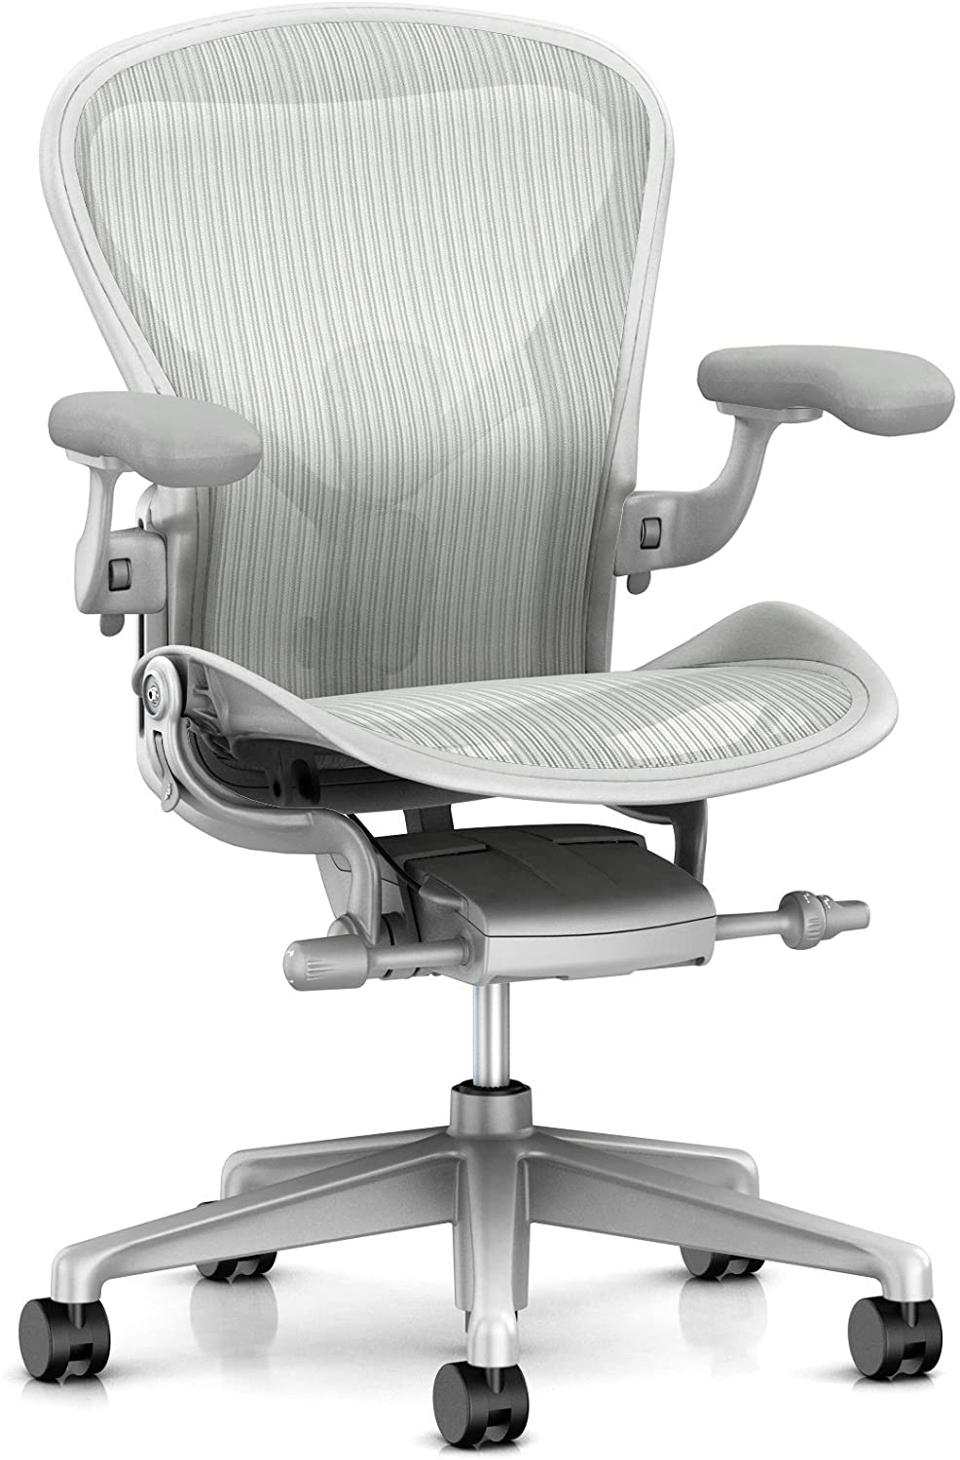 The Best Office Chairs 14 Picks To Upgrade Your Home Office